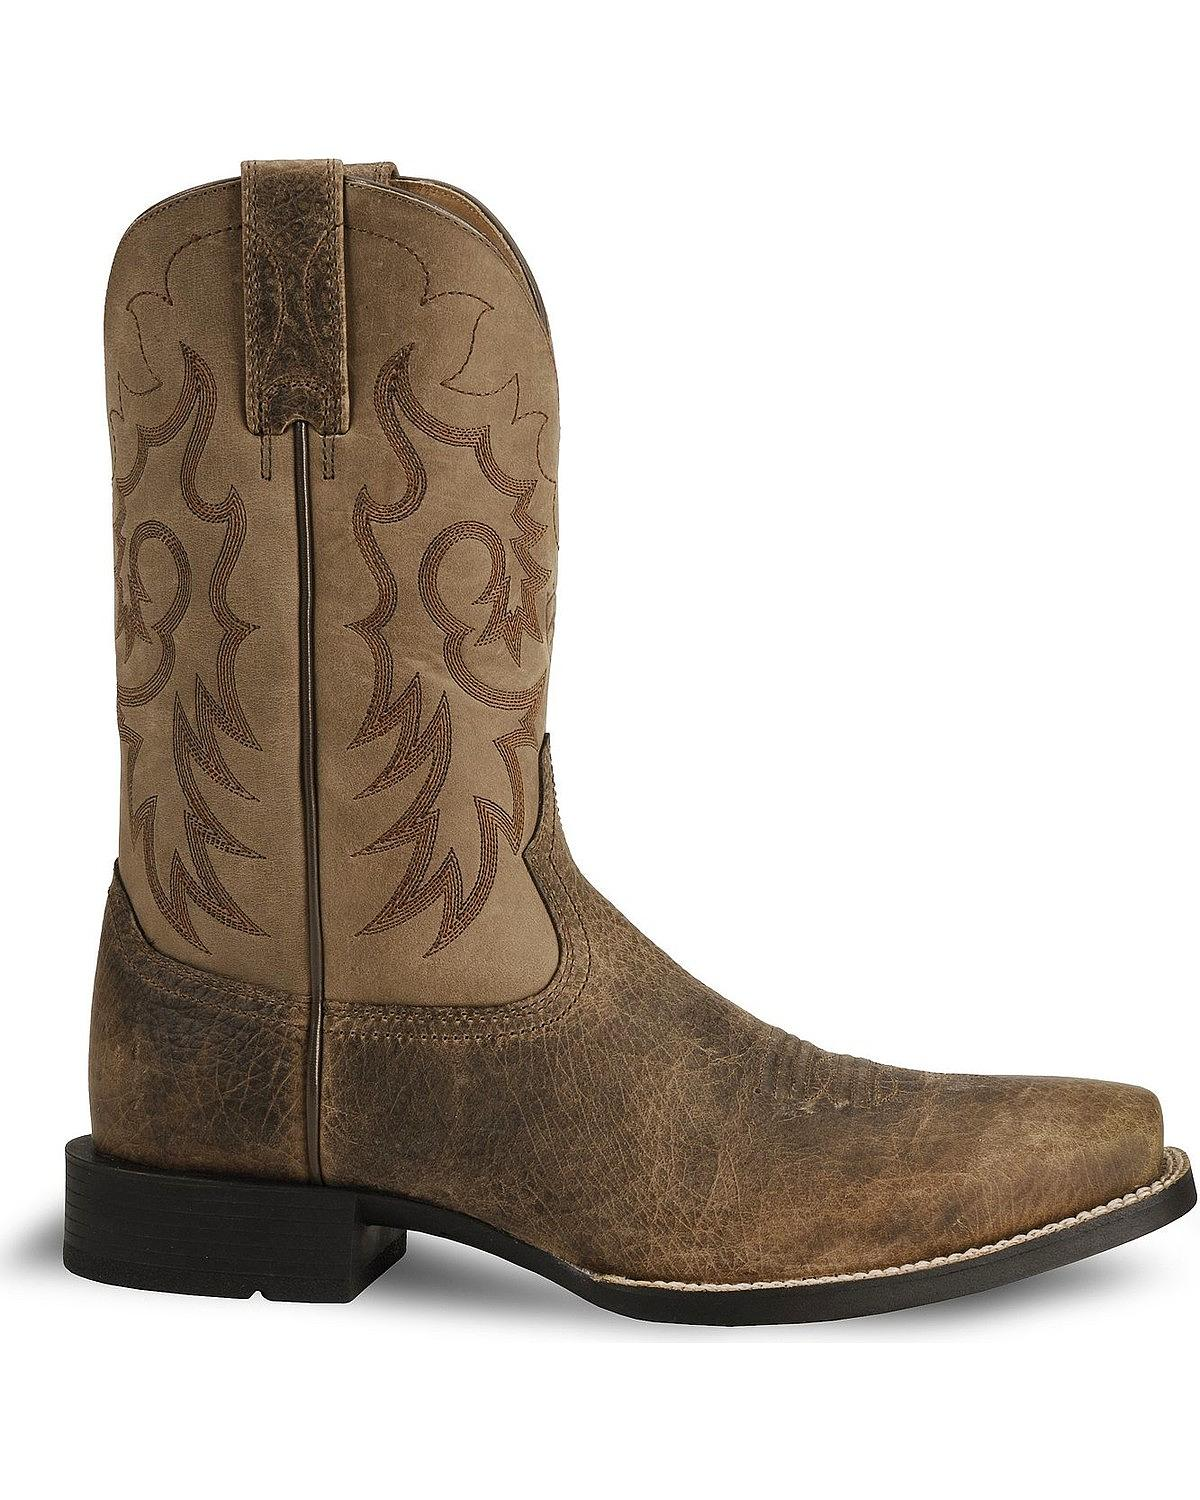 bf86f89a865 Ariat - Ariat Men's Heritage Reinsman Cowboy Boot Square Toe ...